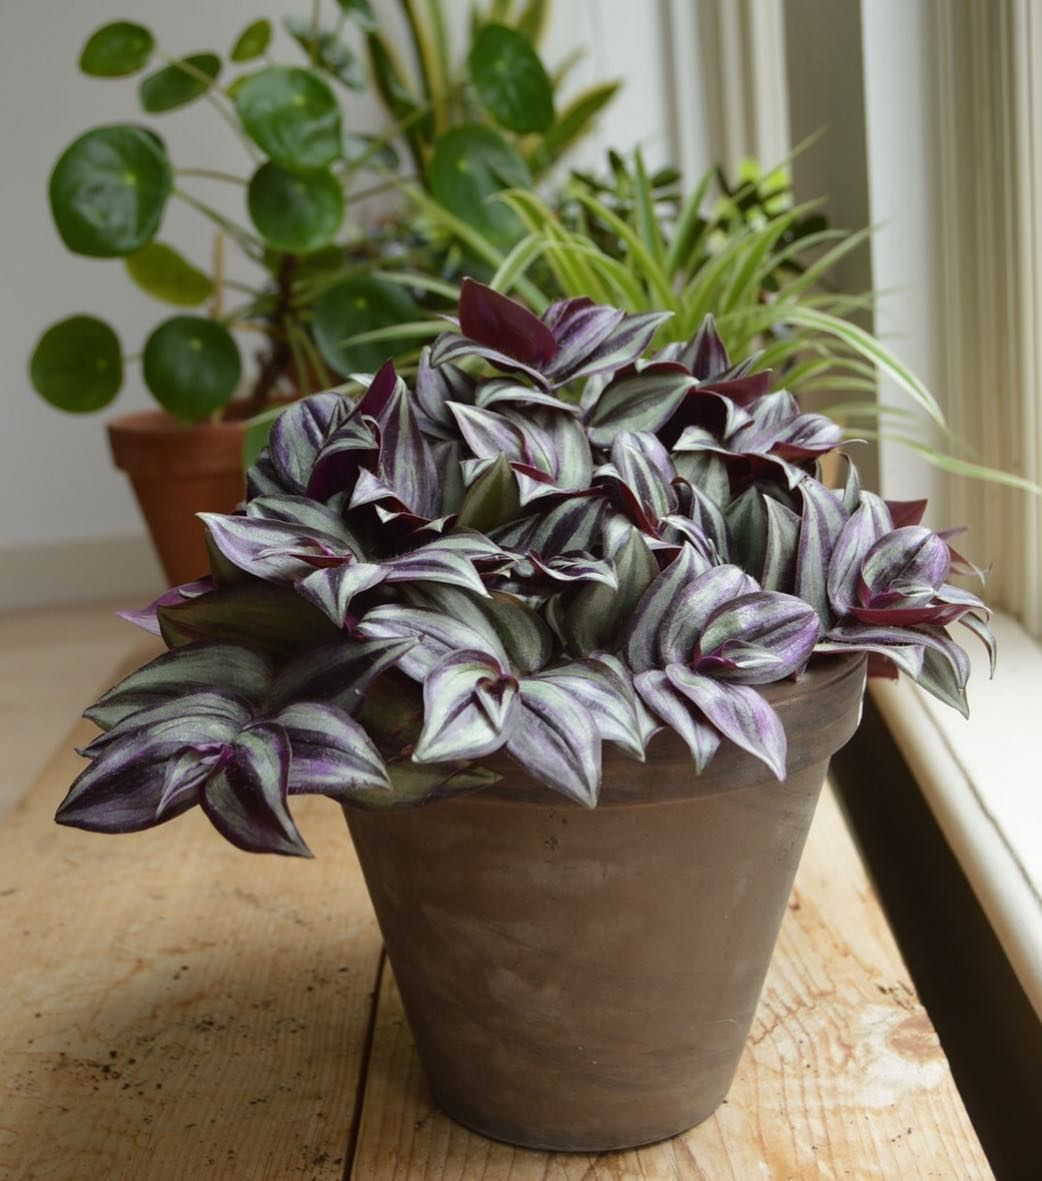 House Plants For Shady Rooms: Create A Sensory Oasis In Your Home With Houseplants